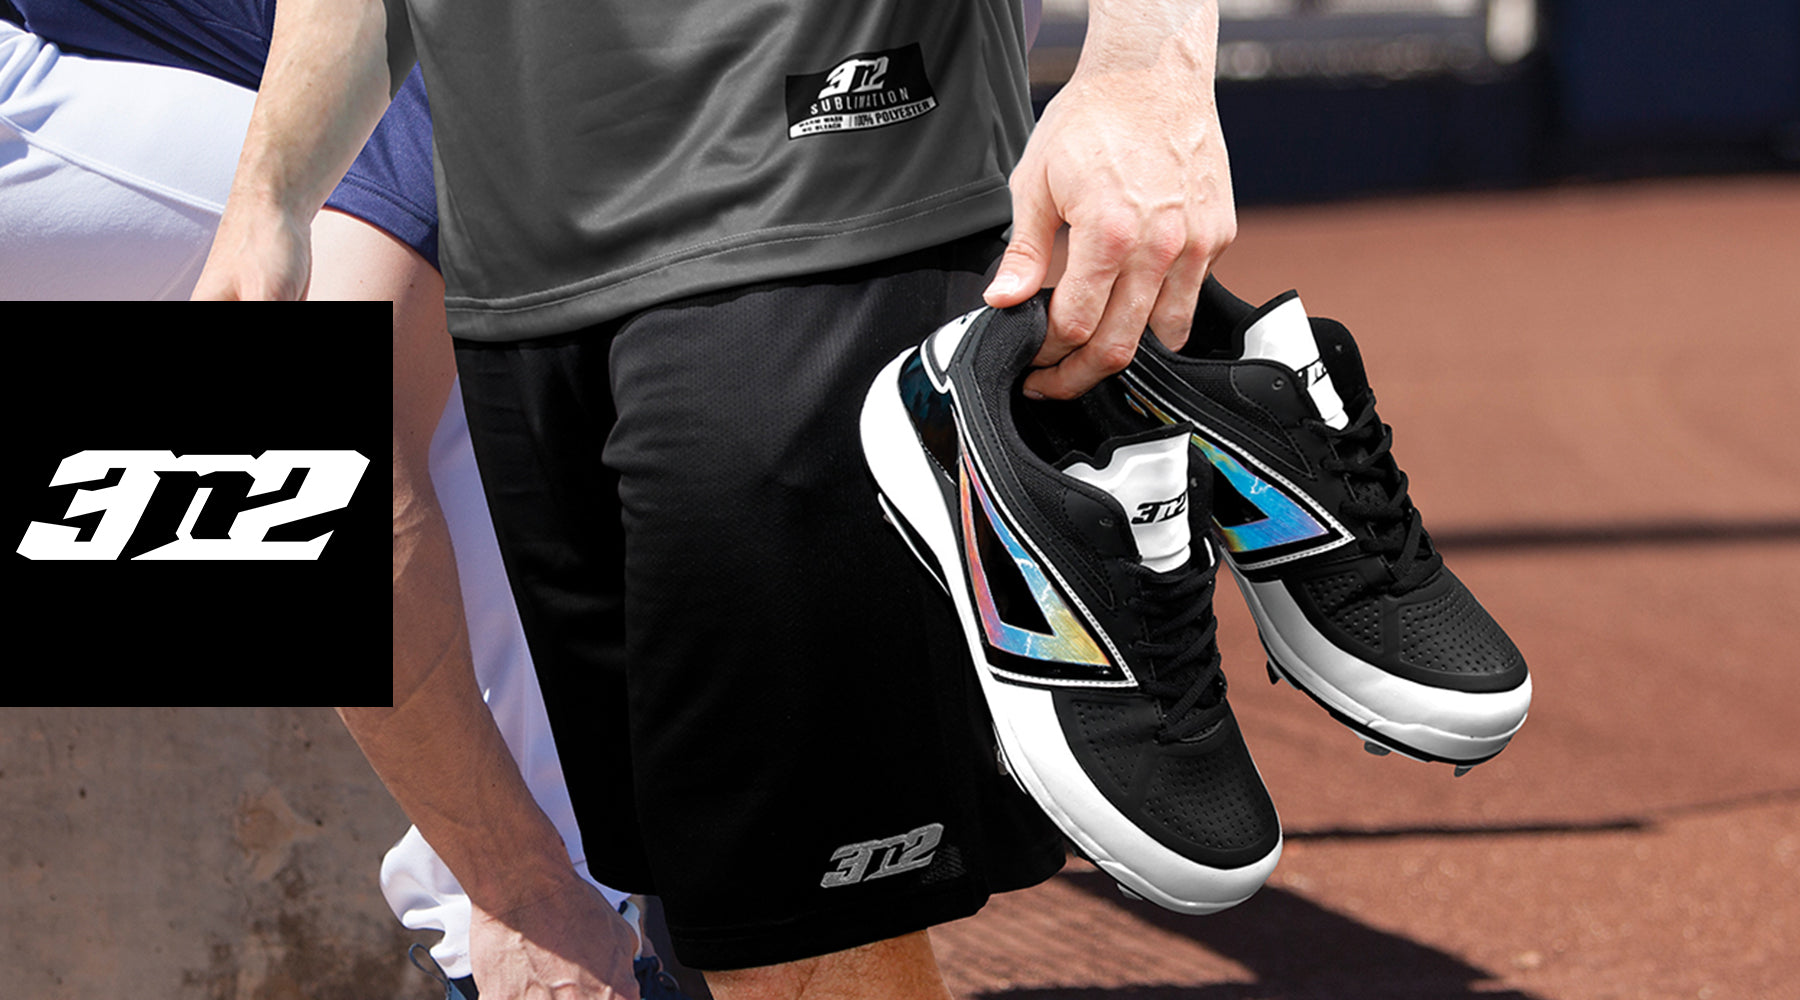 3N2 Baseball footwear - Team Sports - Lanctot Diamond Sport